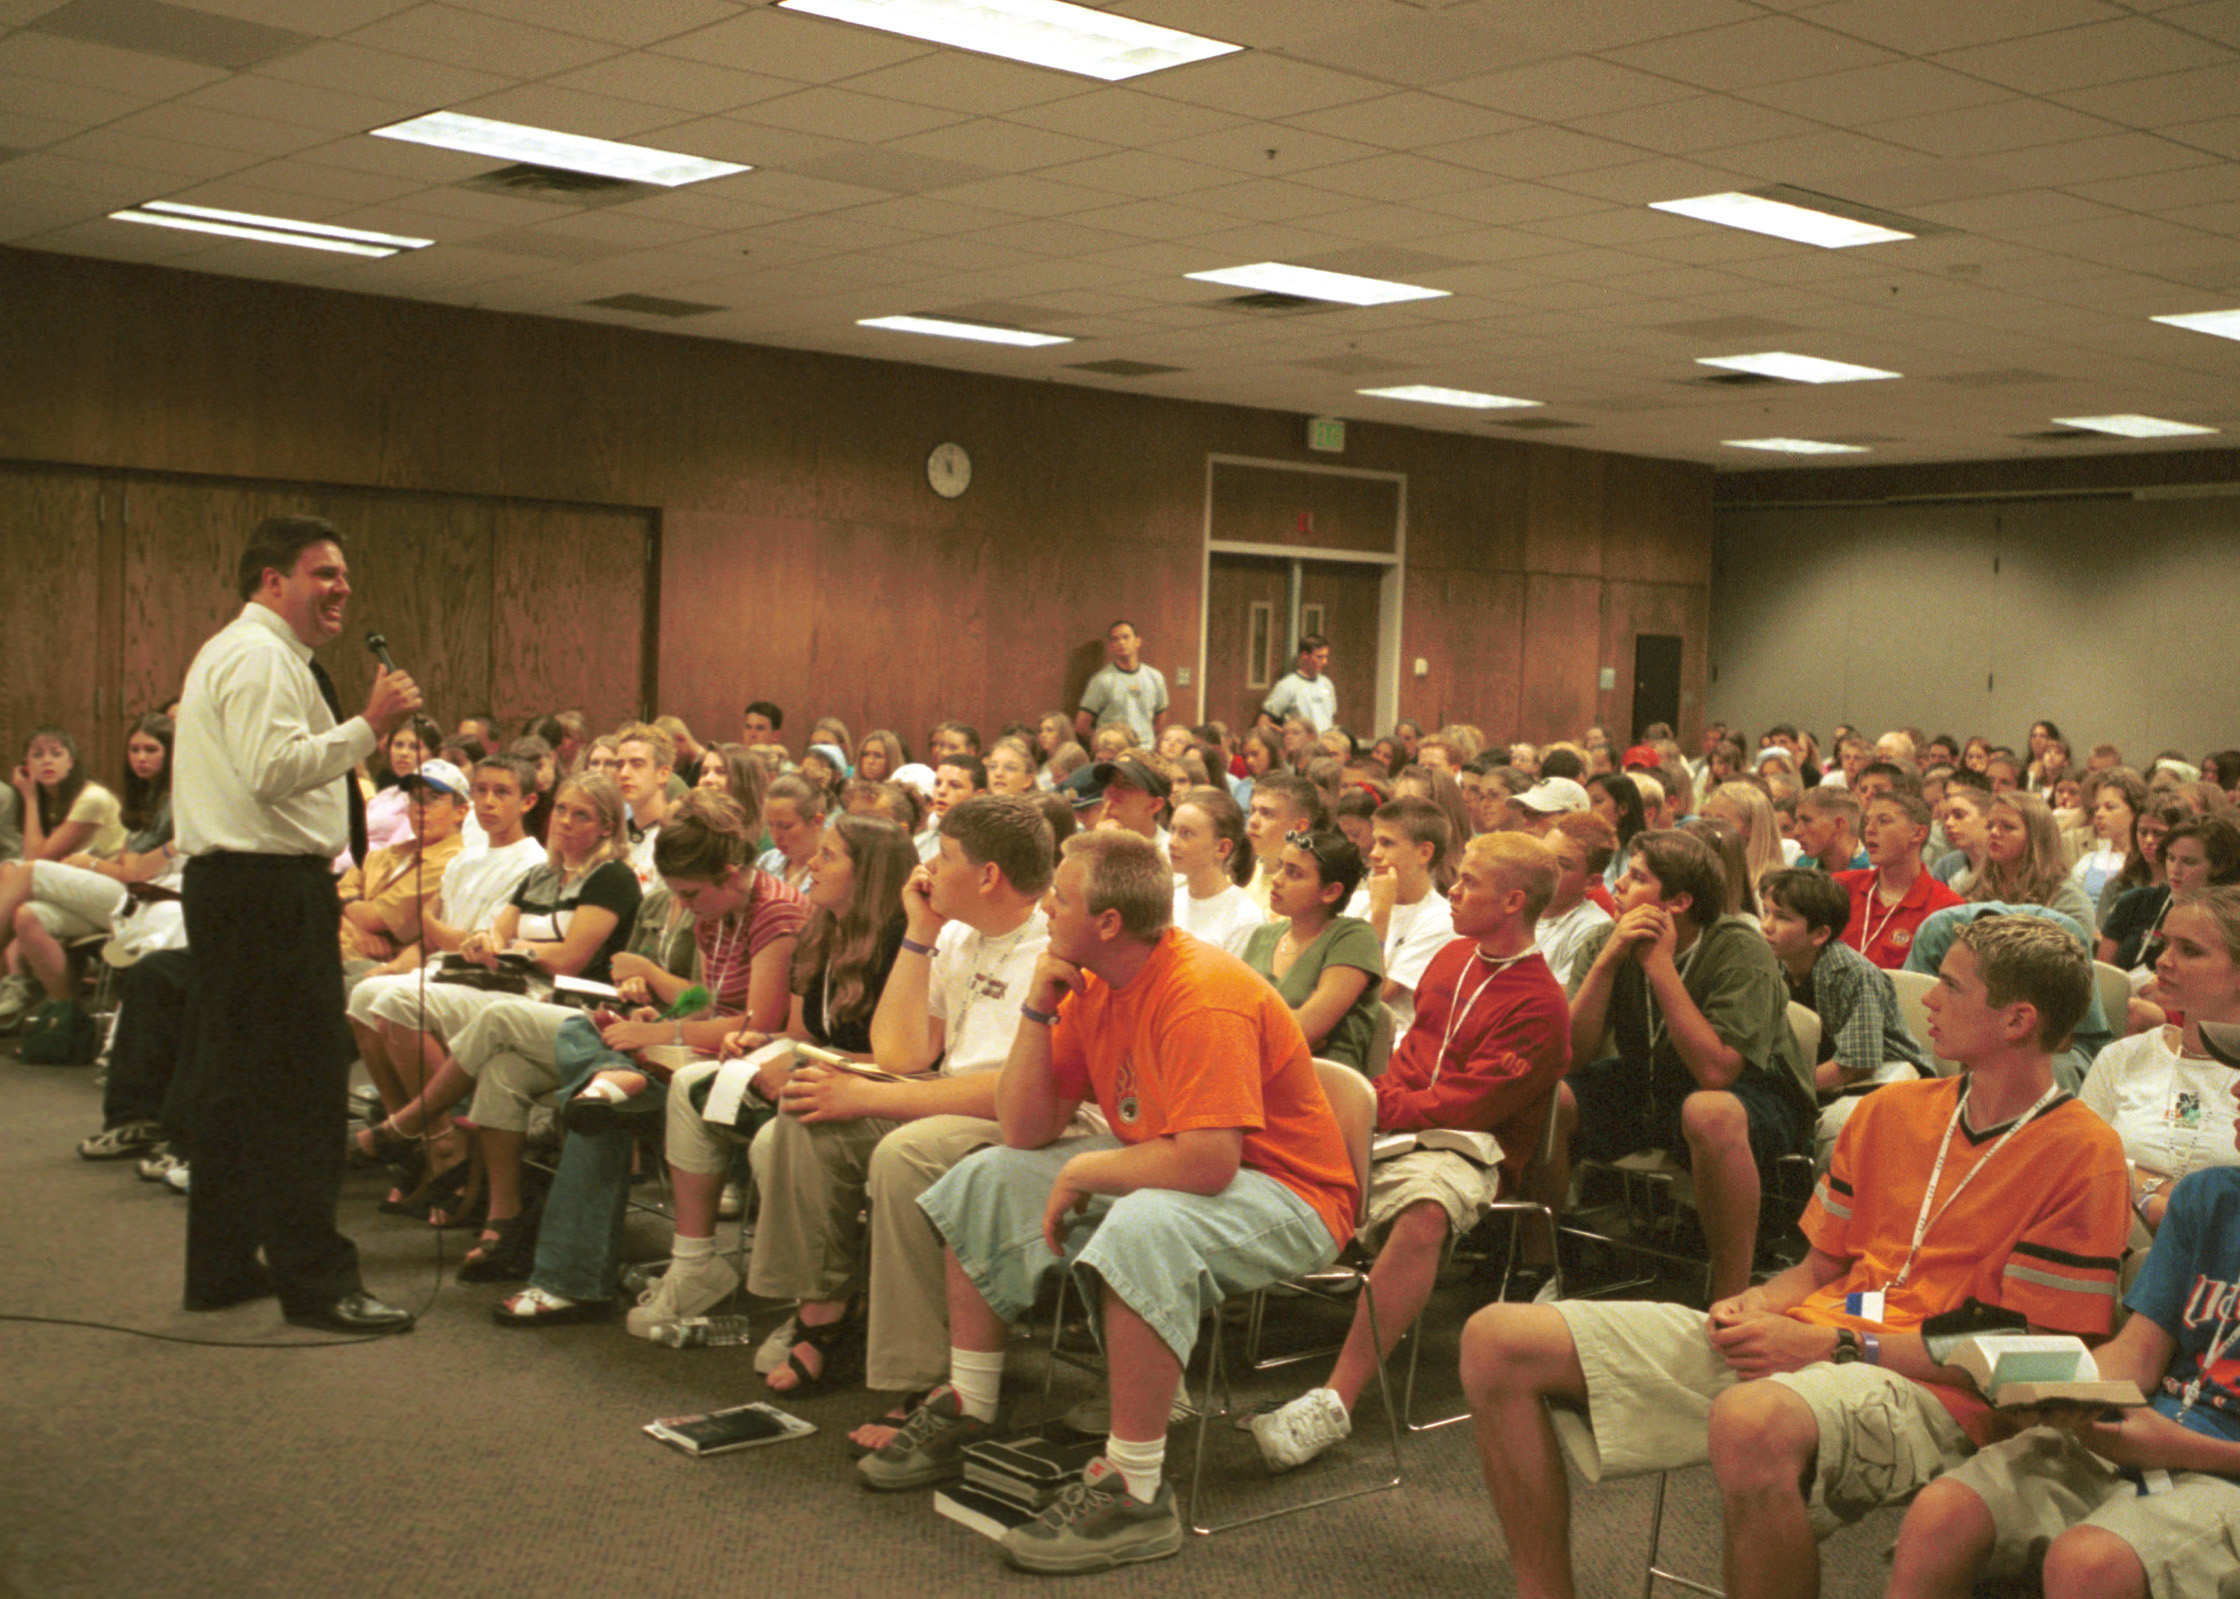 Brad Wilcox speaks to a classroom of youth at Especially for Youth in 2000.